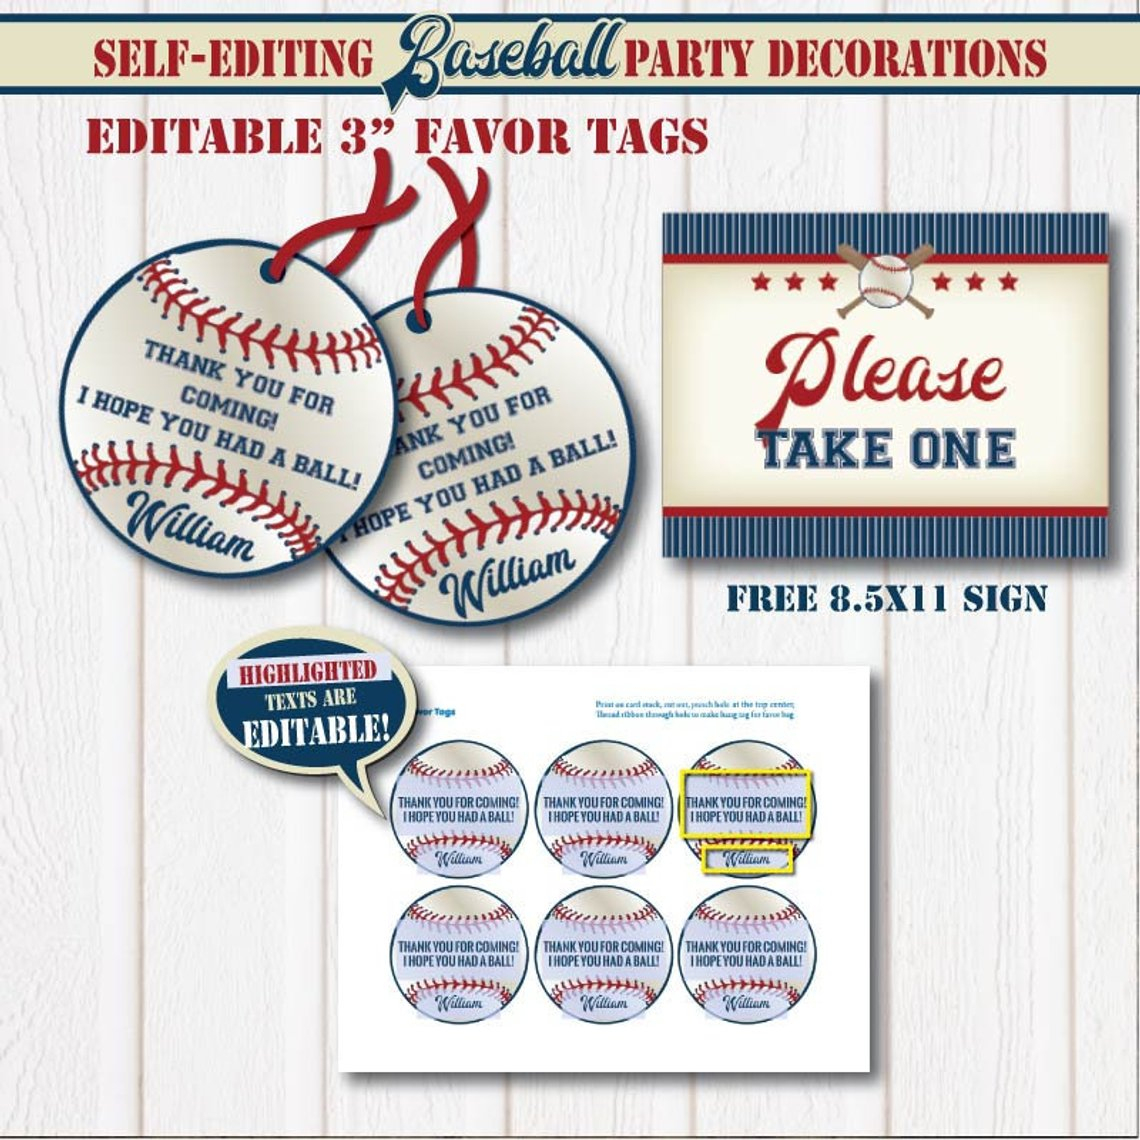 Birthday Baseball Favor Tags Free Printable | Www.topsimages - Free Printable Baseball Favor Tags